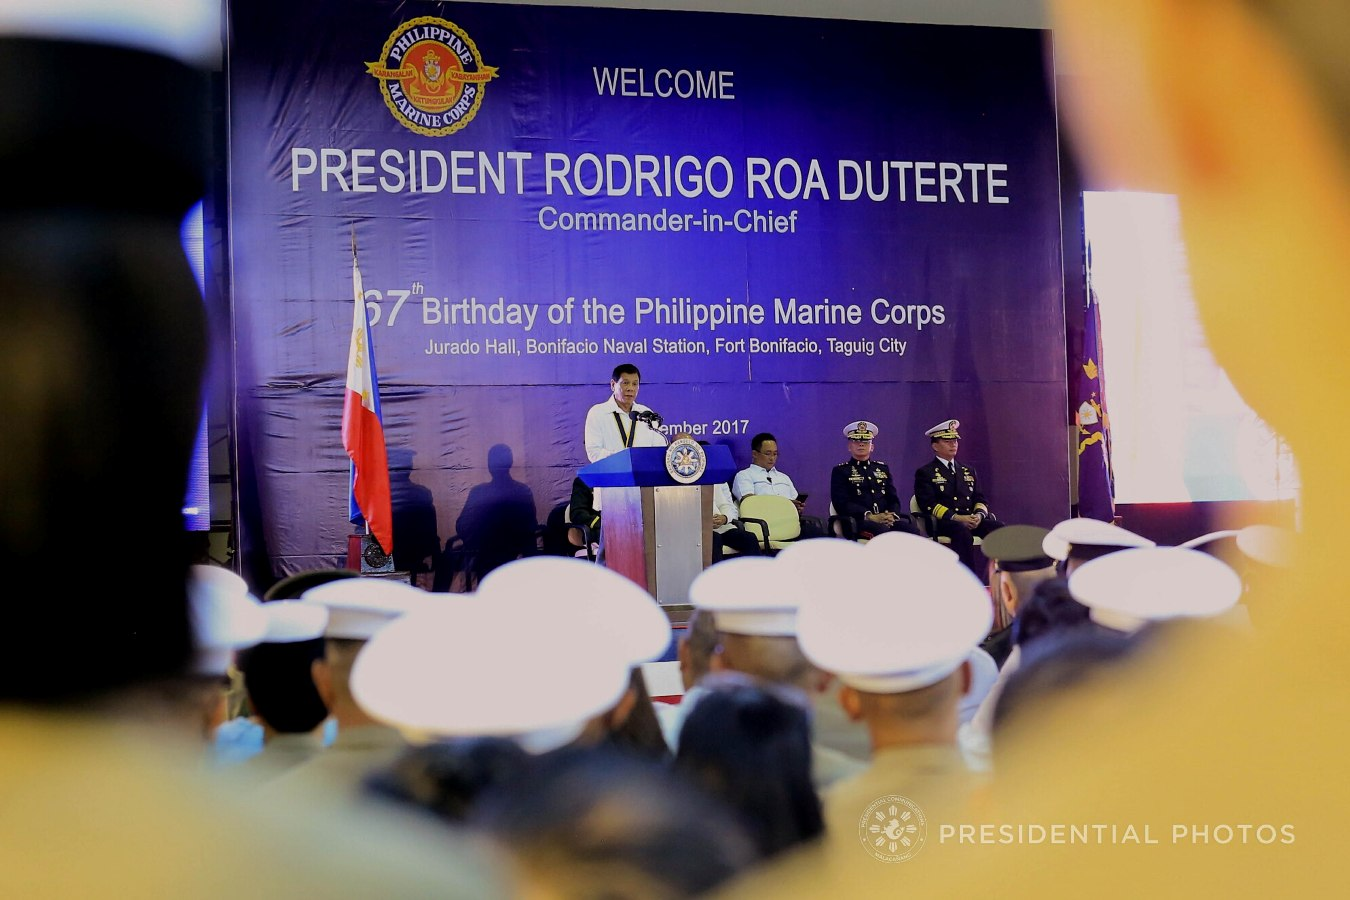 President Rodrigo Roa Duterte, in his speech during the 67th Birthday celebration of the Philippine Marine Corps at the Bonifacio Naval Station in Fort Bonifacio, Taguig City on November 7, 2017, lauds the army and police for a job well done in liberating Marawi City. Likewise, he also acknowledged the help of various countries in the war against the terrorists in Marawi City. ALBERT ALCAIN/PRESIDENTIAL PHOTO